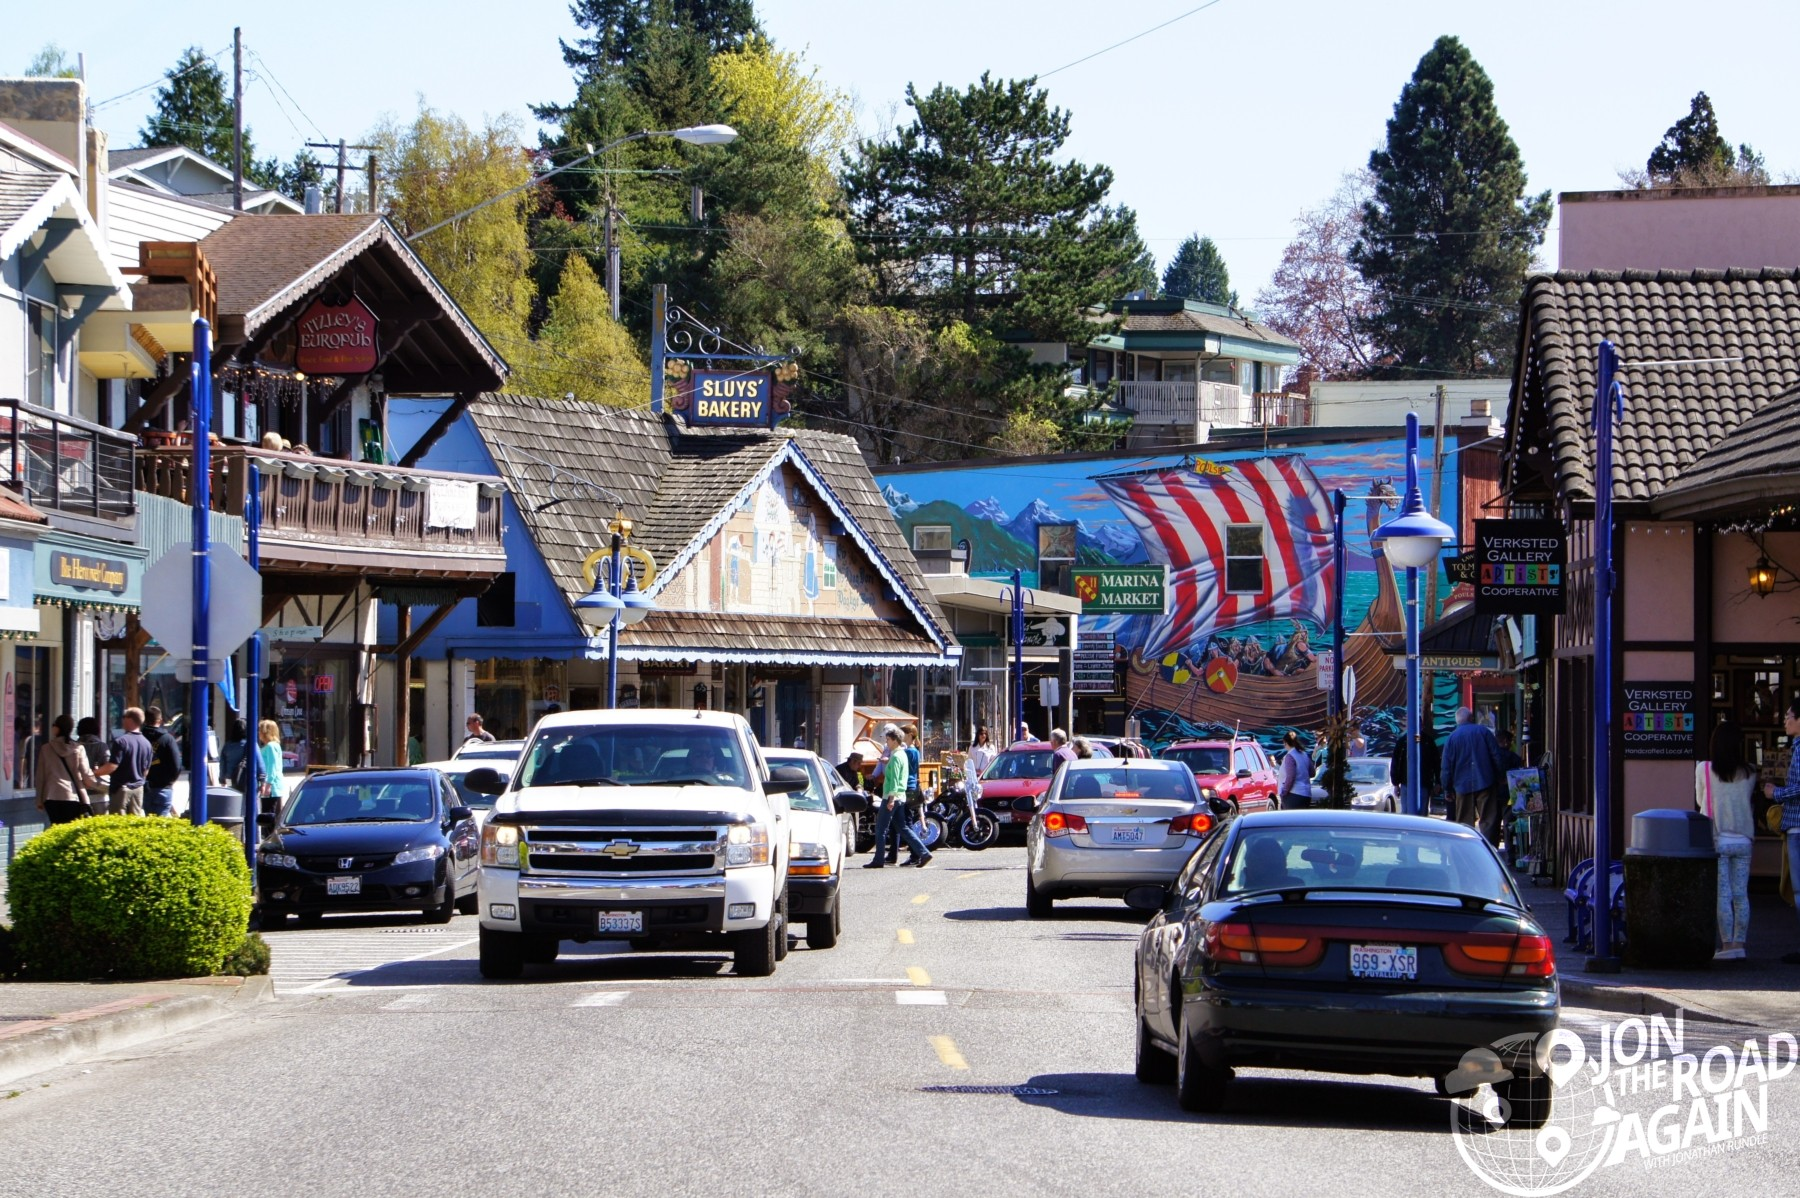 Main street of Poulsbo